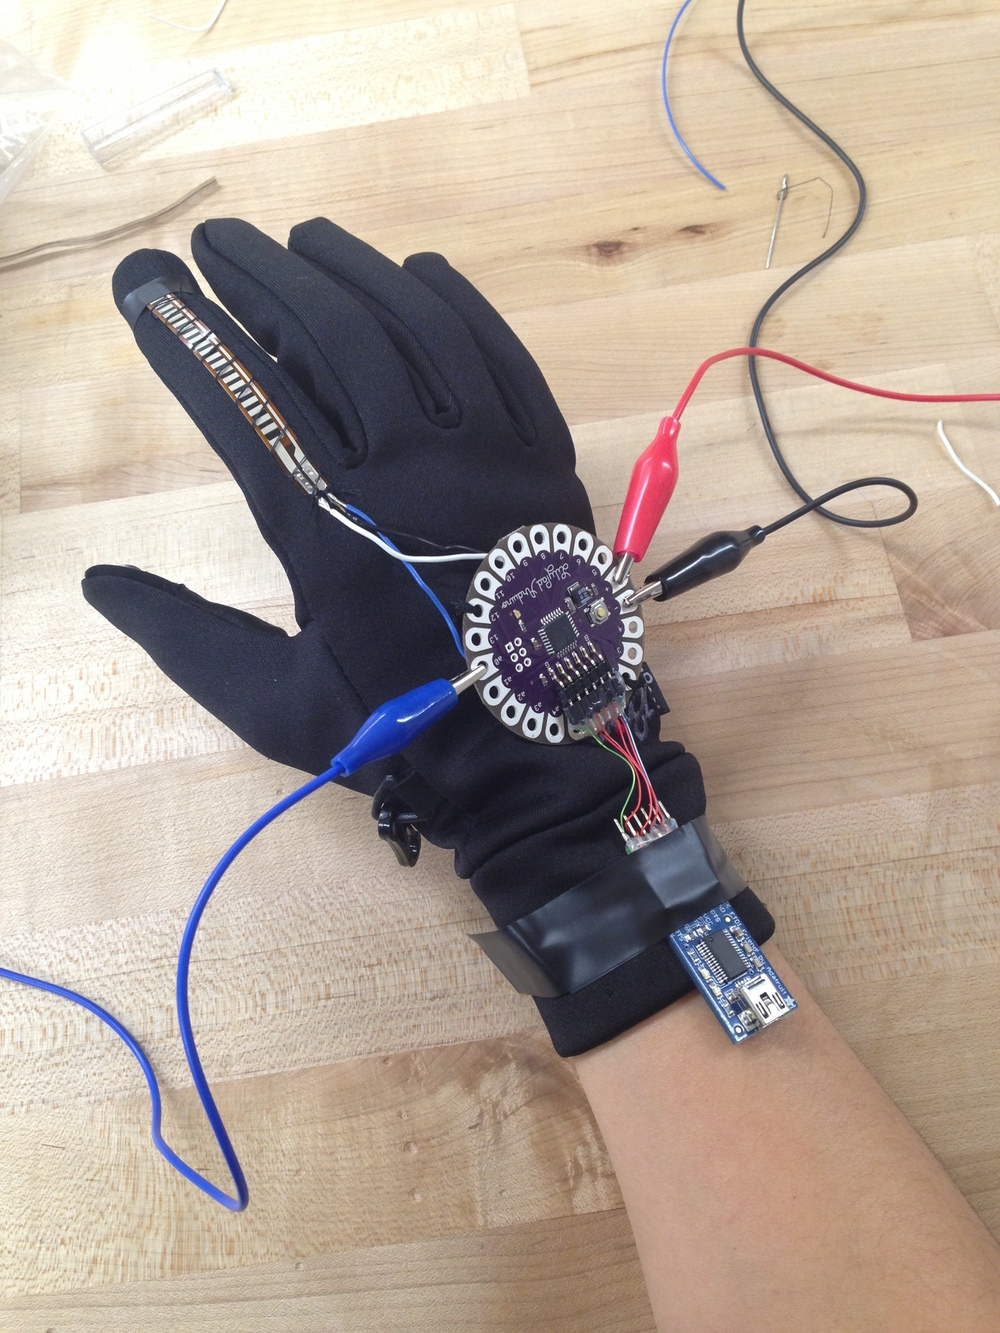 One of the most challenging parts was transitioning from circuit to glove.  We had to control test each part one by one.